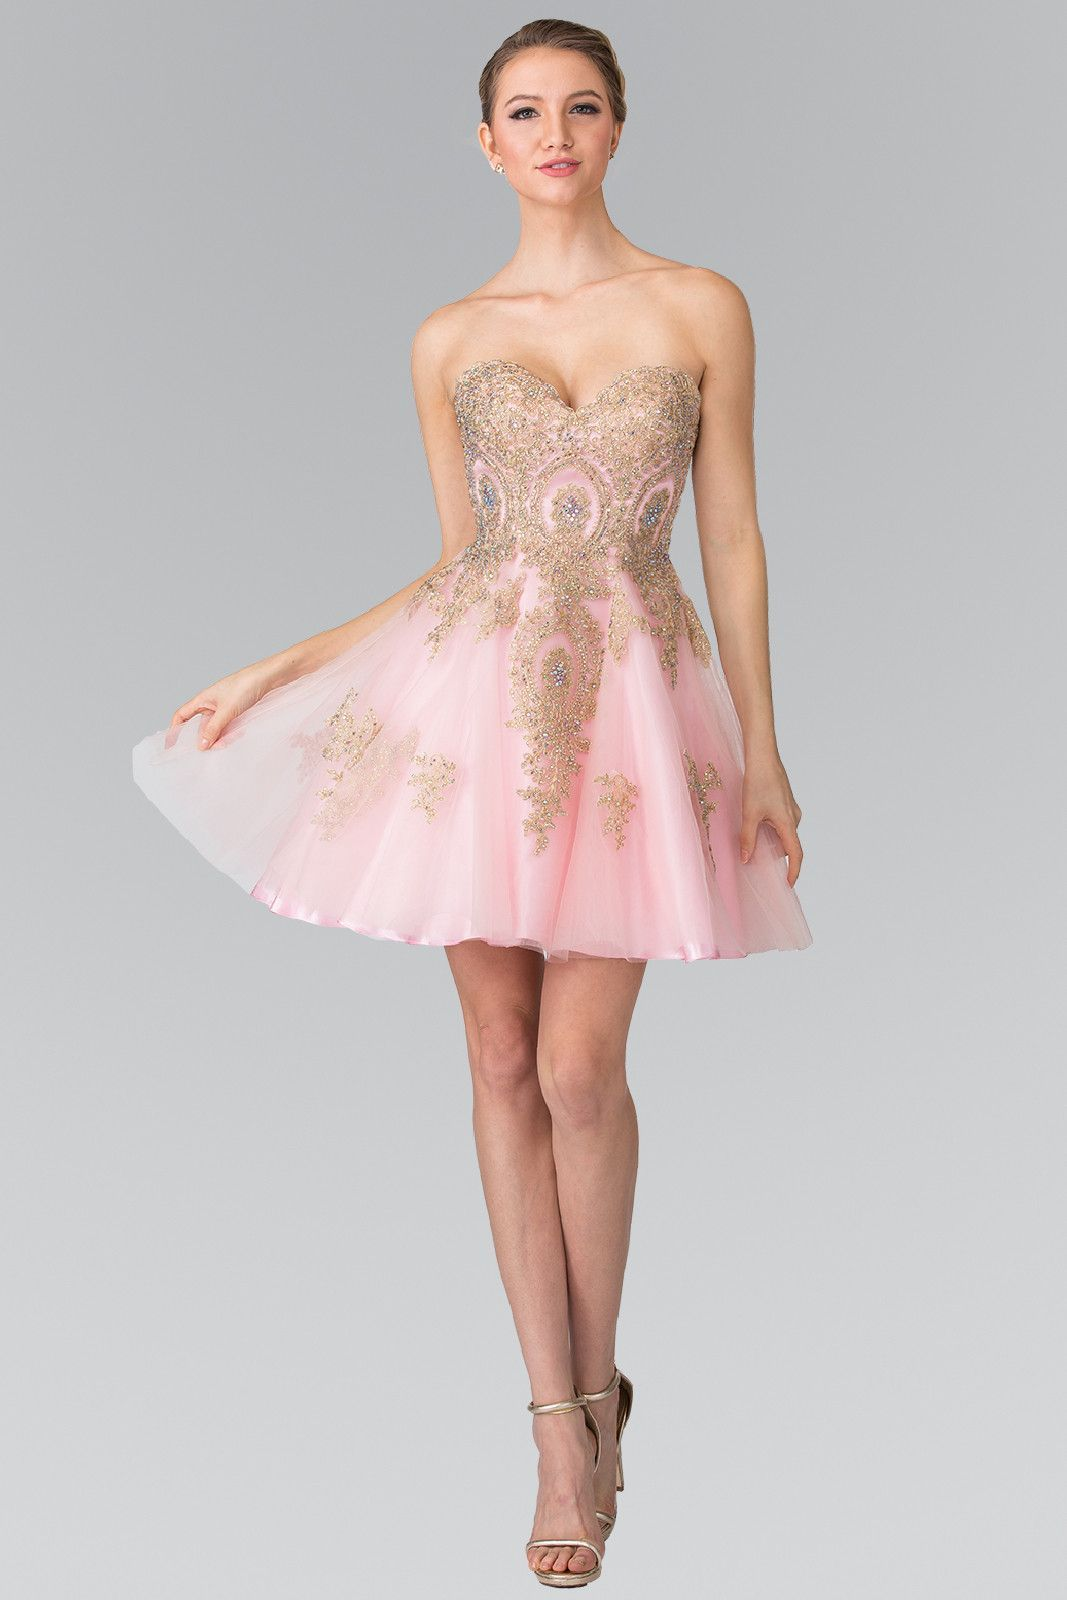 799facee9 Short Strapless Dress with Gold Lace Applique by Elizabeth K GS2371 ...